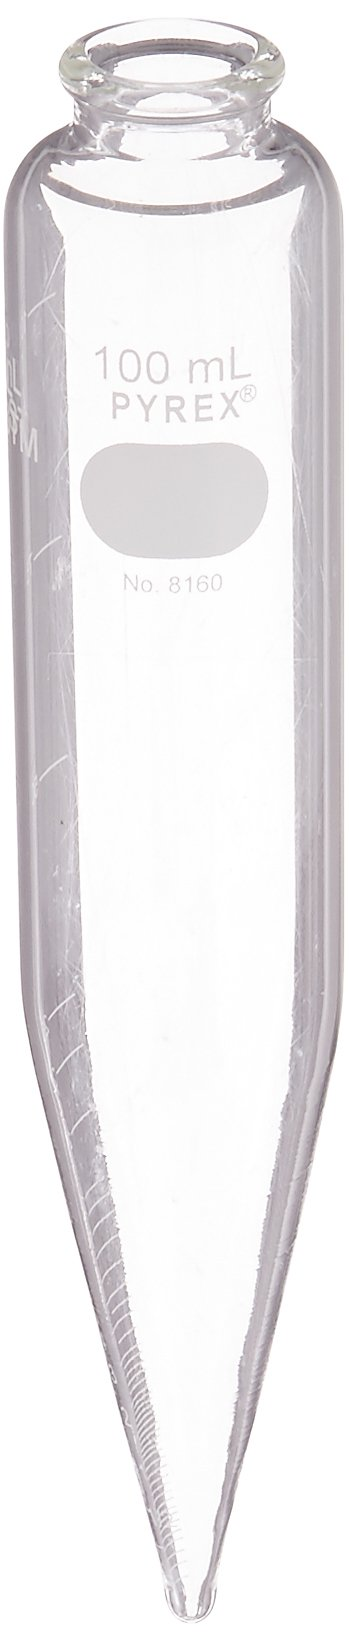 Corning Pyrex 8160-100 Oil Conical Centrifuge Tube, 100 mL, with White Graduations (Case of 12) by Corning